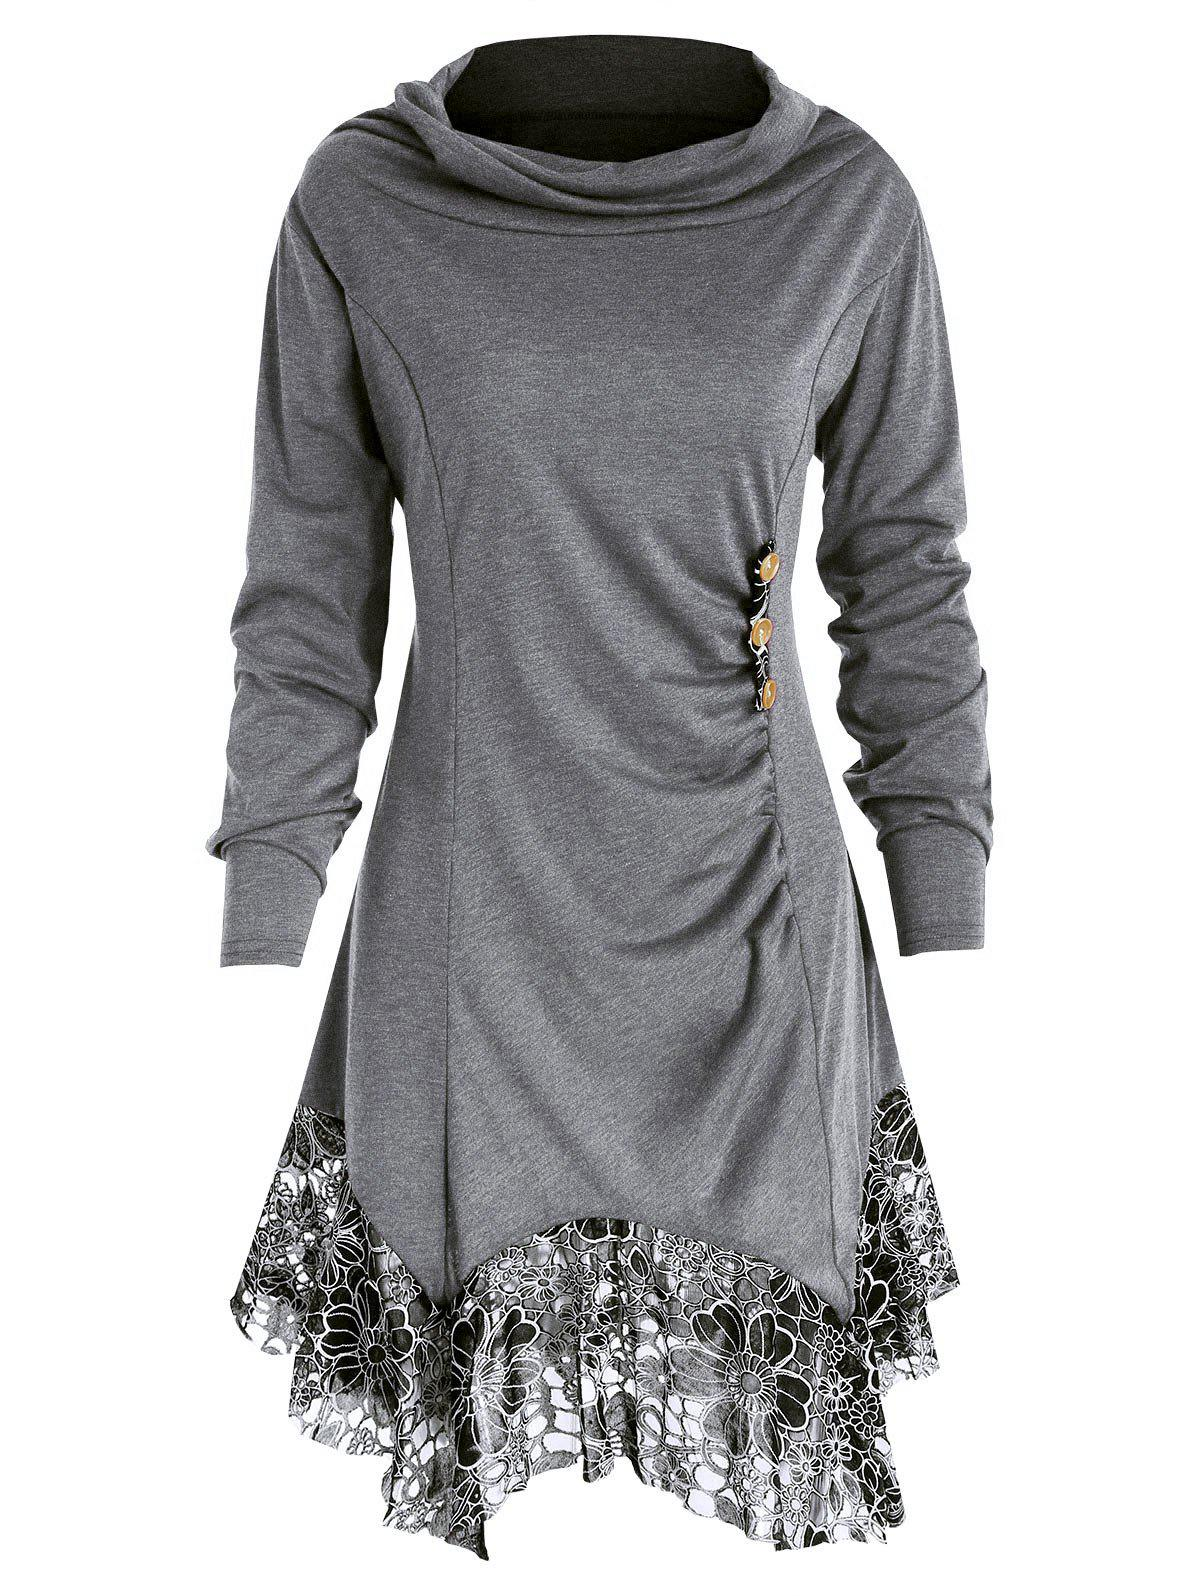 Shop Full Sleeve Heap Collar Skirted T-shirt